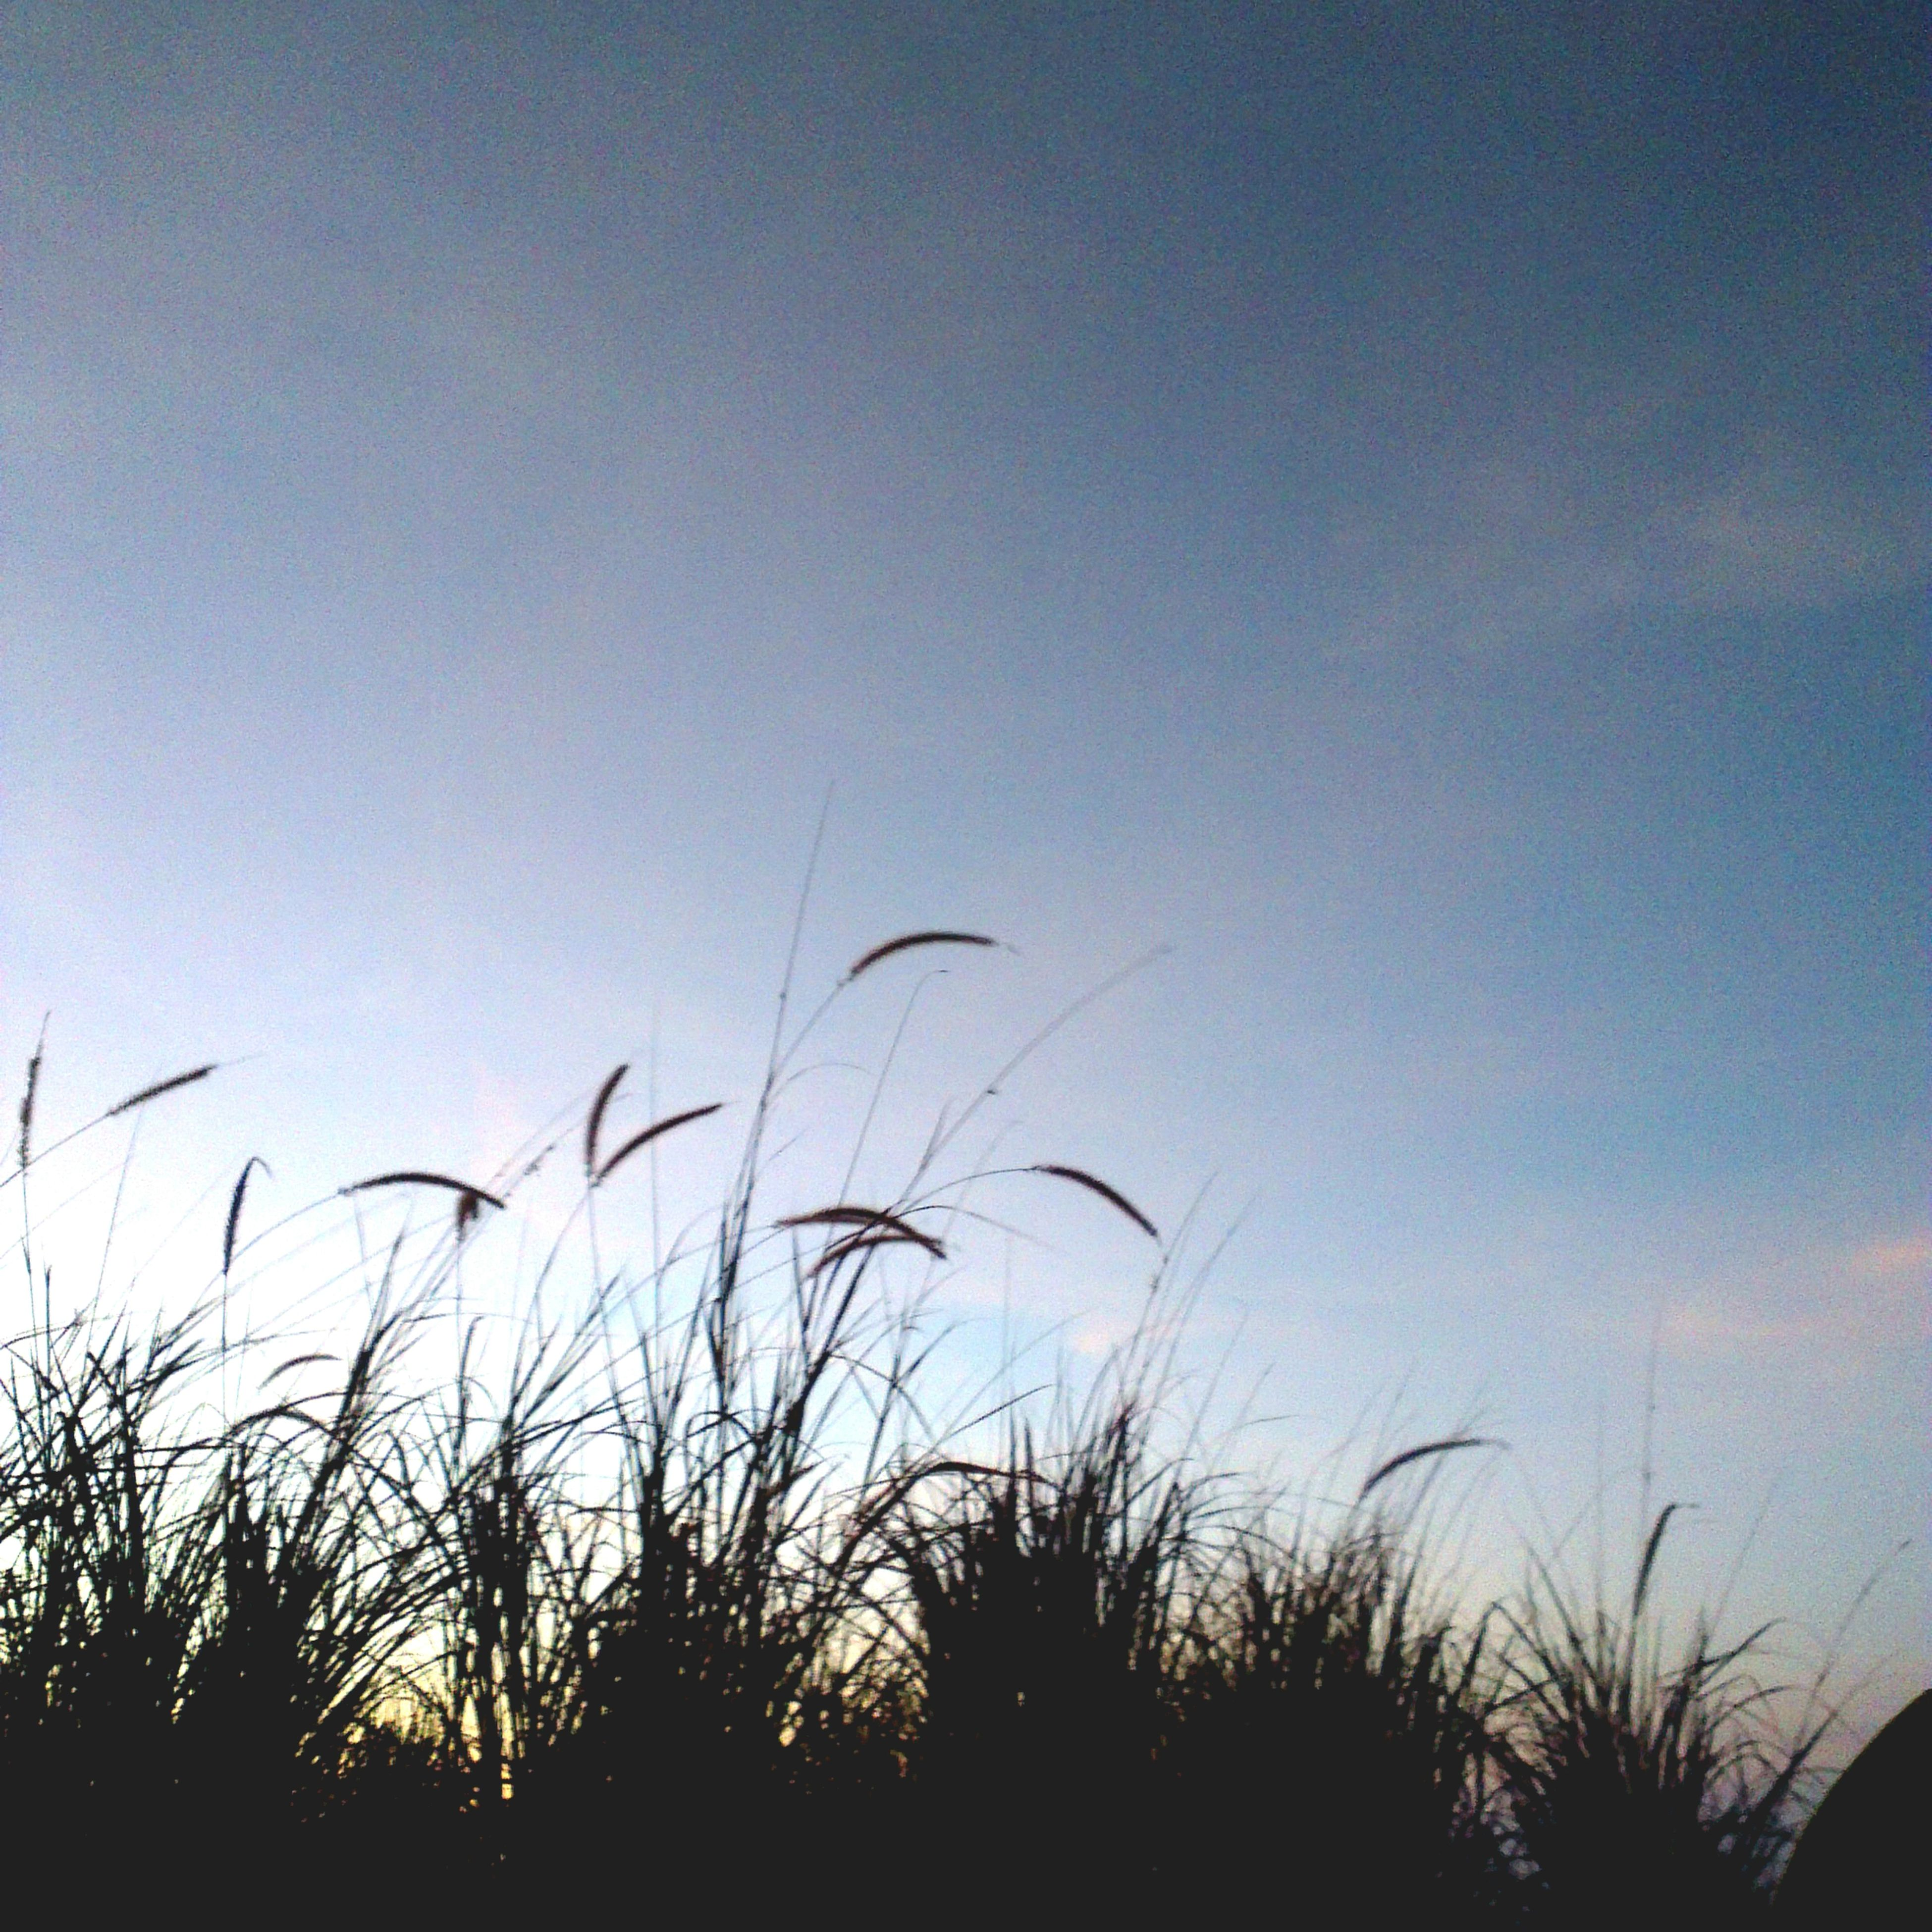 silhouette, plant, sunset, tranquility, sky, growth, nature, beauty in nature, tranquil scene, dusk, field, scenics, grass, clear sky, copy space, low angle view, outdoors, no people, idyllic, outline